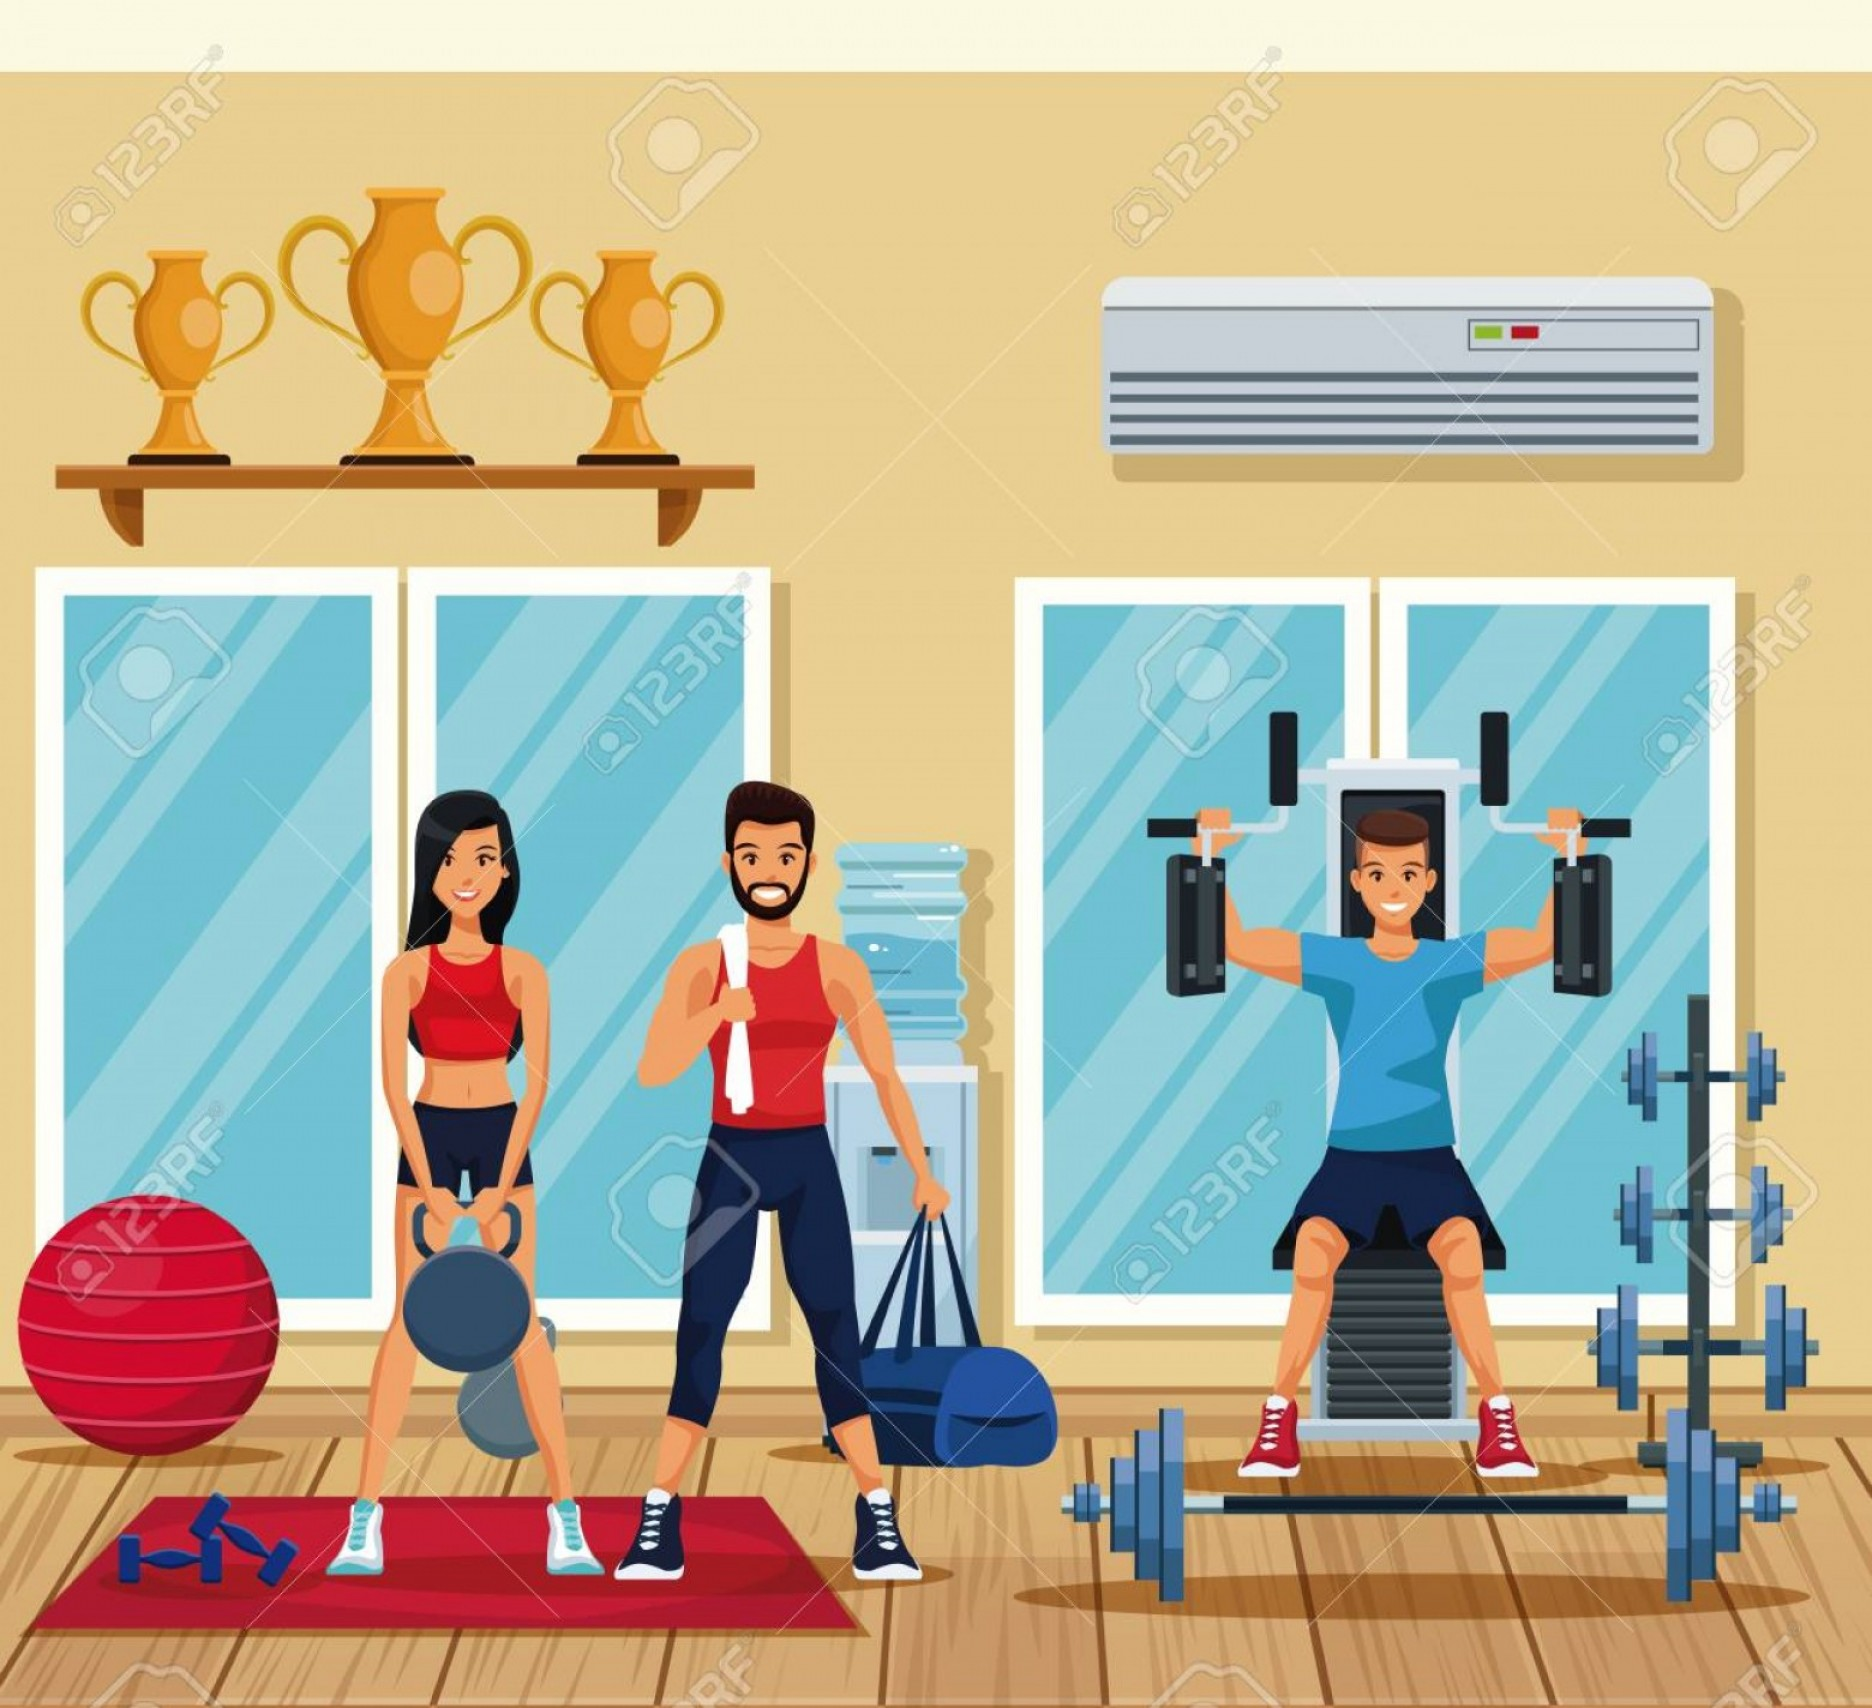 Weight Lifting Vector Graphics: Photostock Vector Fitness People Training Inside Gym Vector Illustration Graphic Design